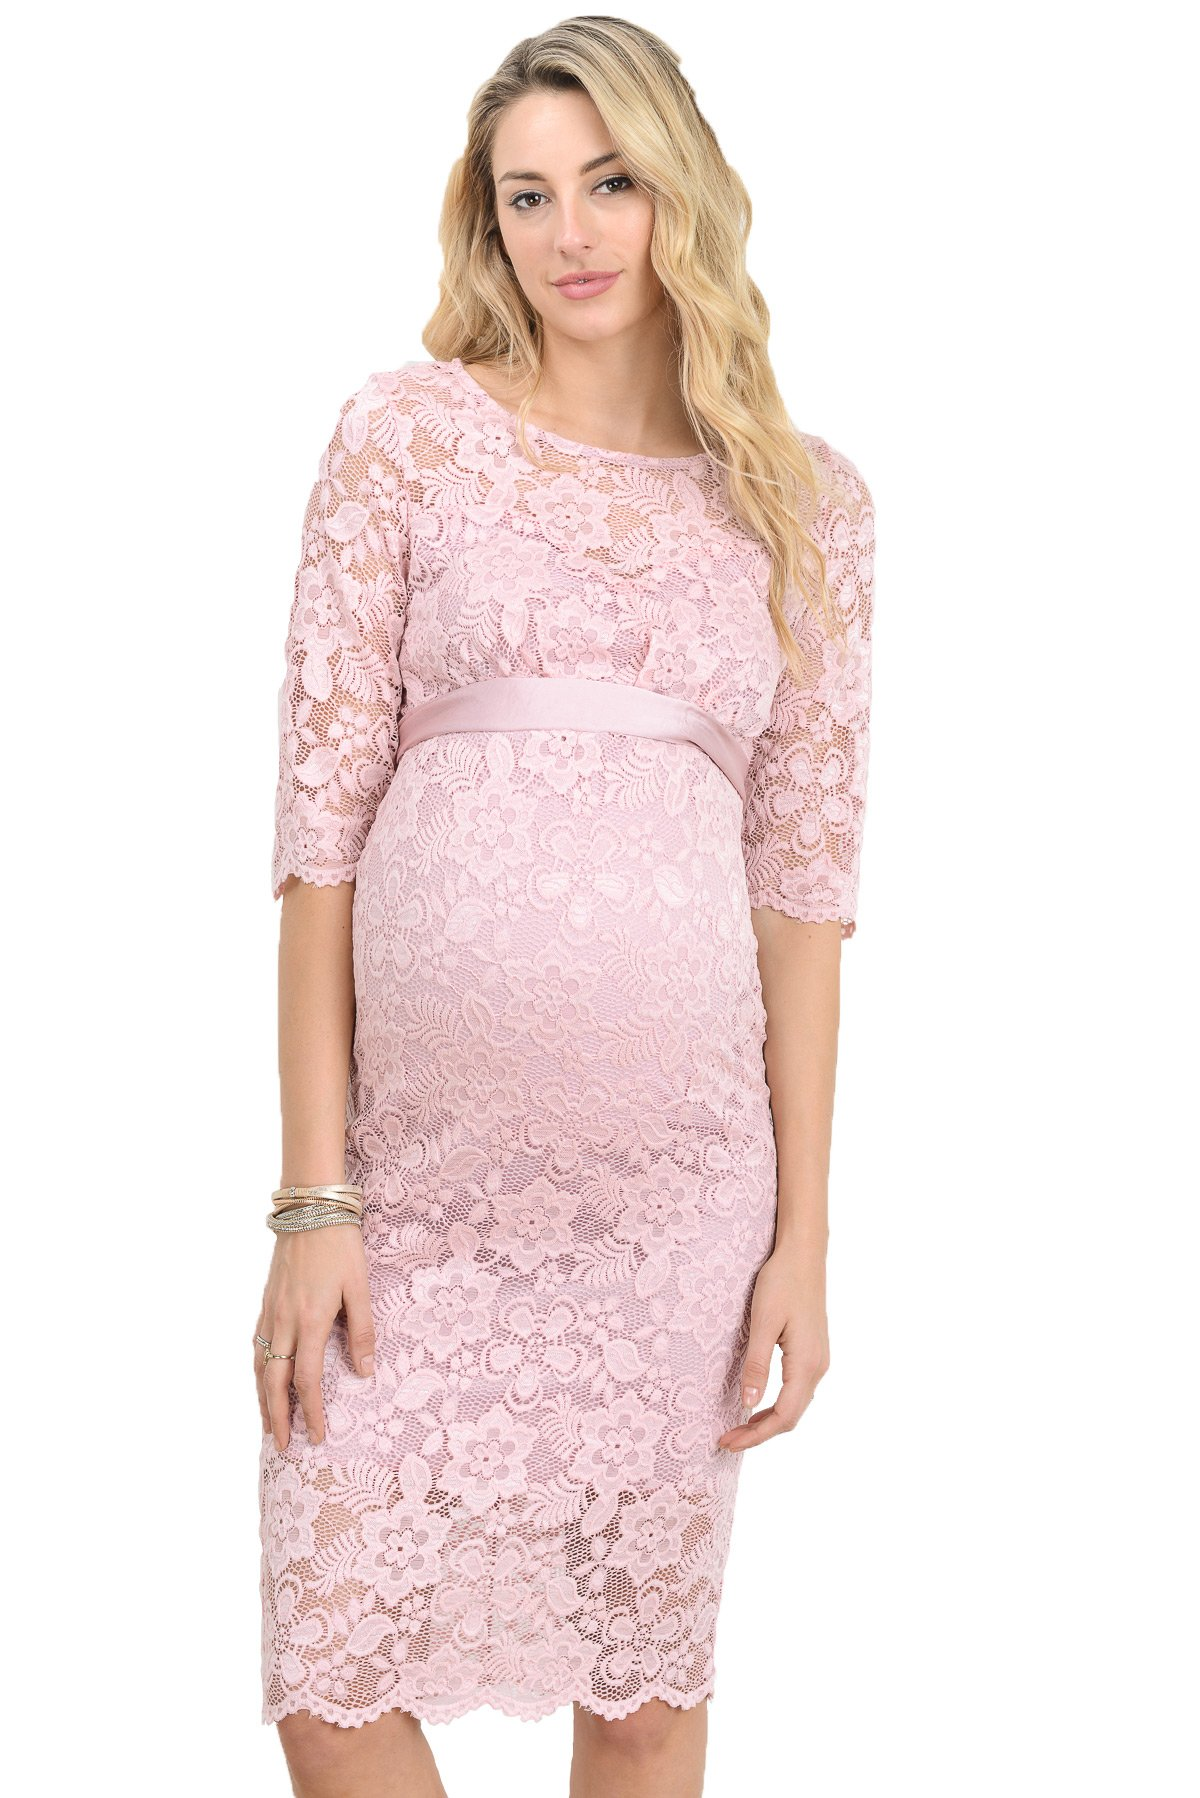 Elegant And Stunning, This Maternity Lace Dress ...